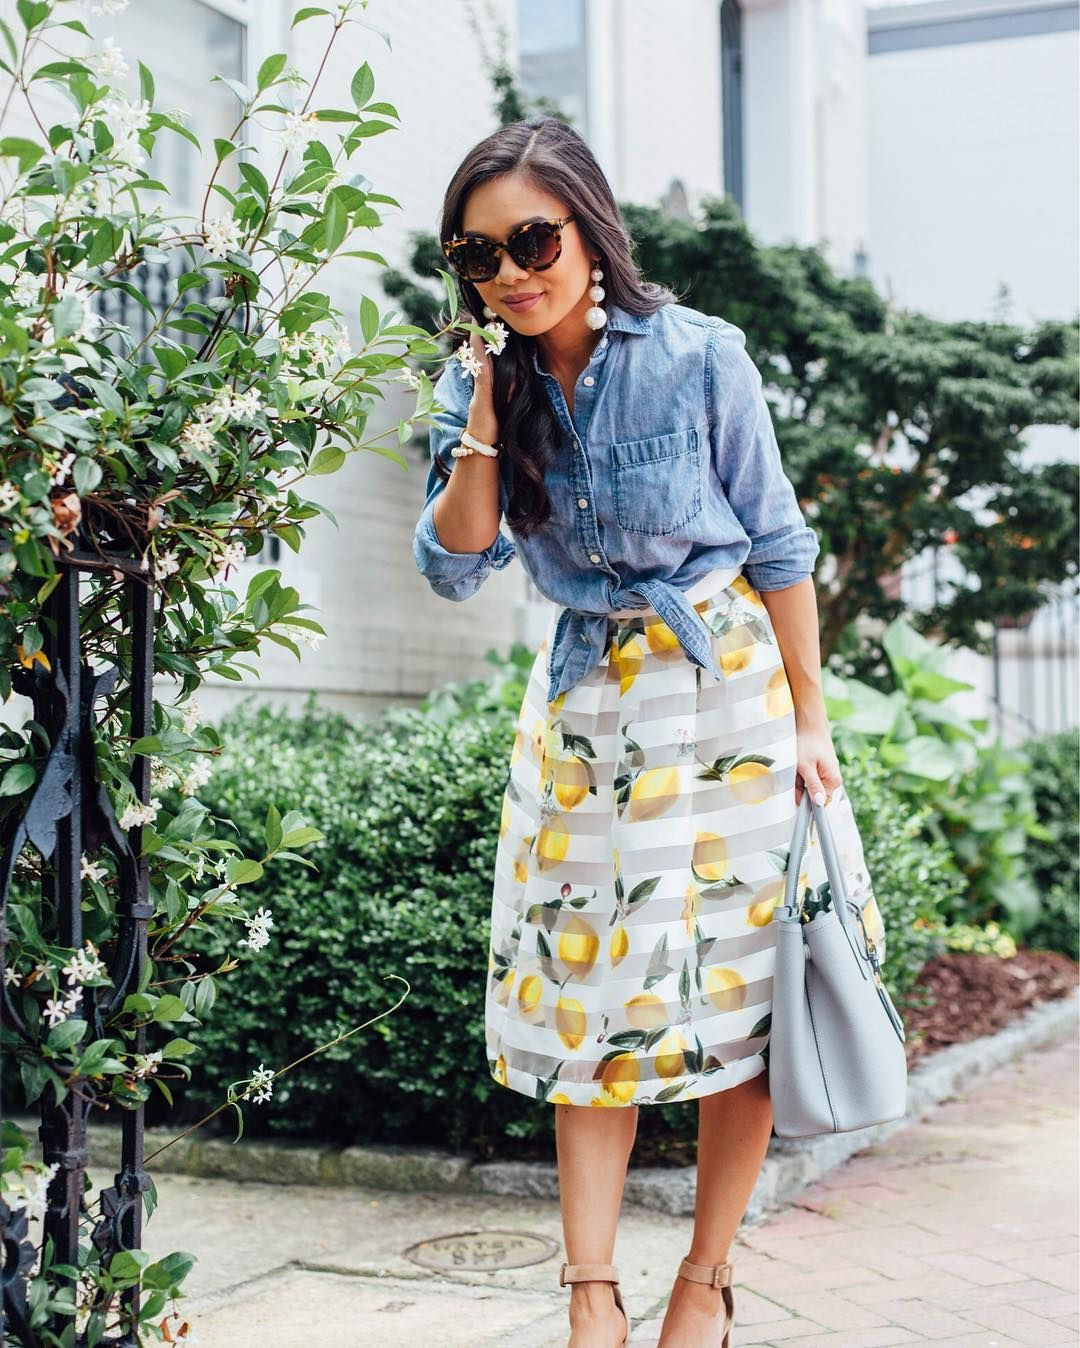 6dfcd4908870 Our new lemon print skirt is perfect for wine tasting or Sunday brunch this  Summer! The bright yellow print and mesh stripes give this midi skirt a  chic yet ...